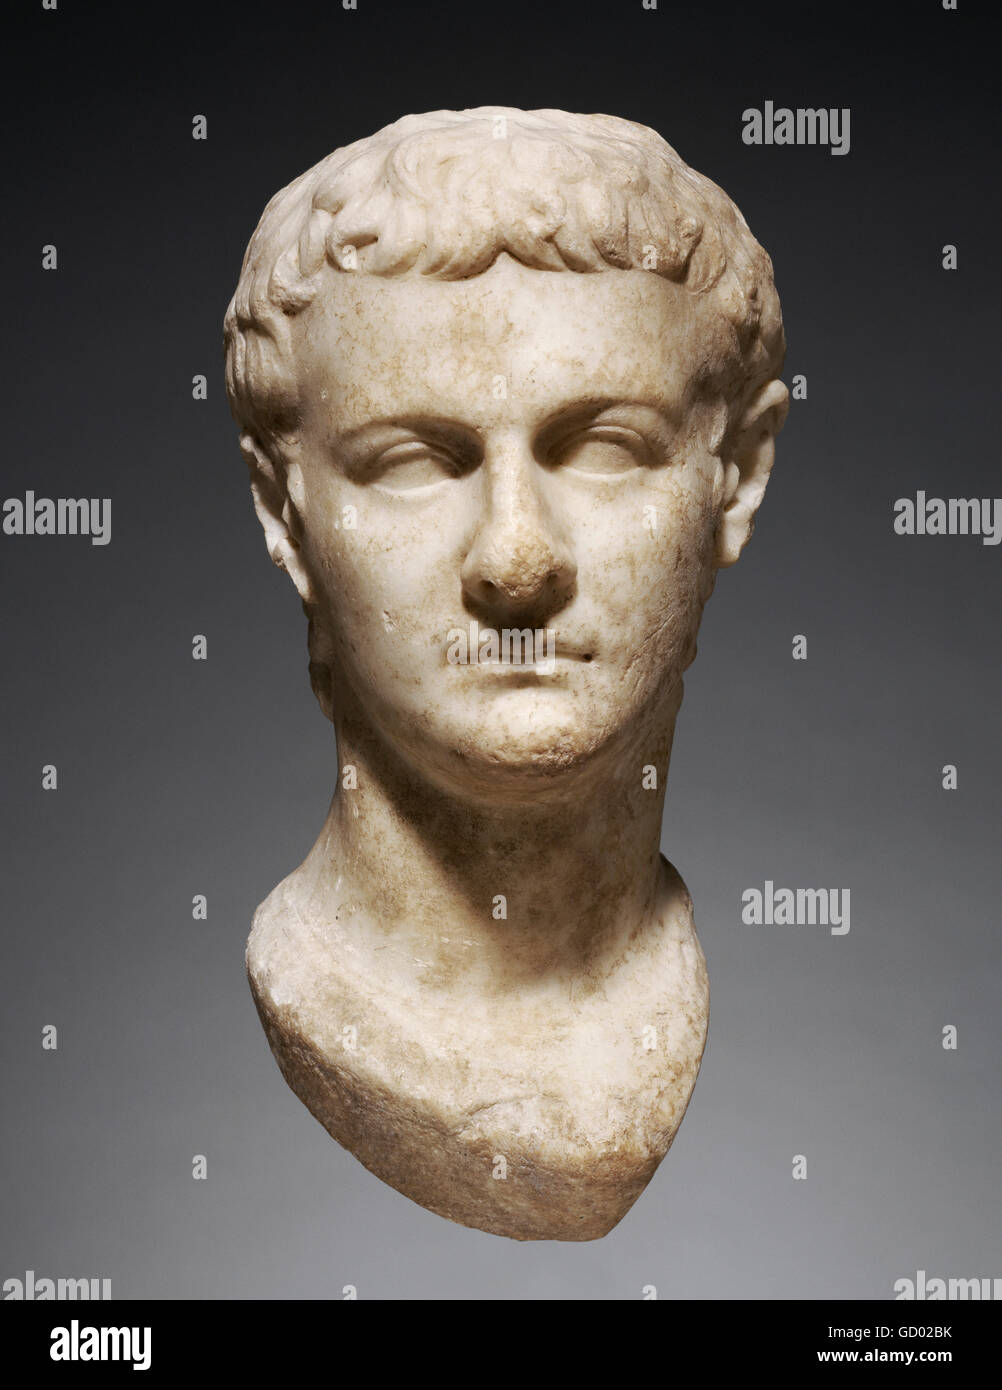 Caligula. Marble head of Emperor Caligula (AD 12 - AD 41), who ruled between AD 37 and 41, dated c.AD 40. Stock Photo